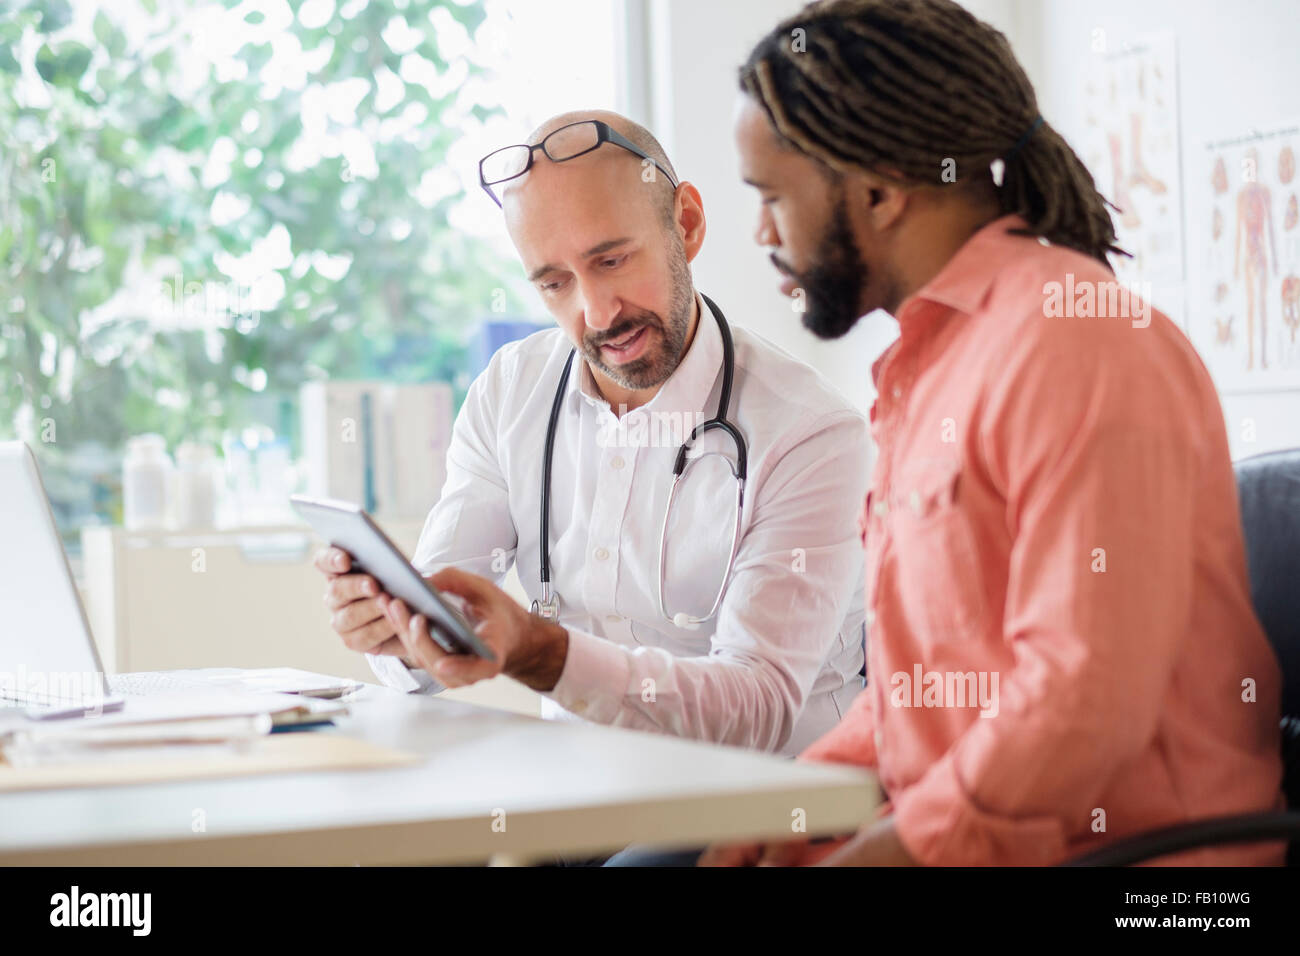 Doctor giving consultation to patient using digital tablet - Stock Image